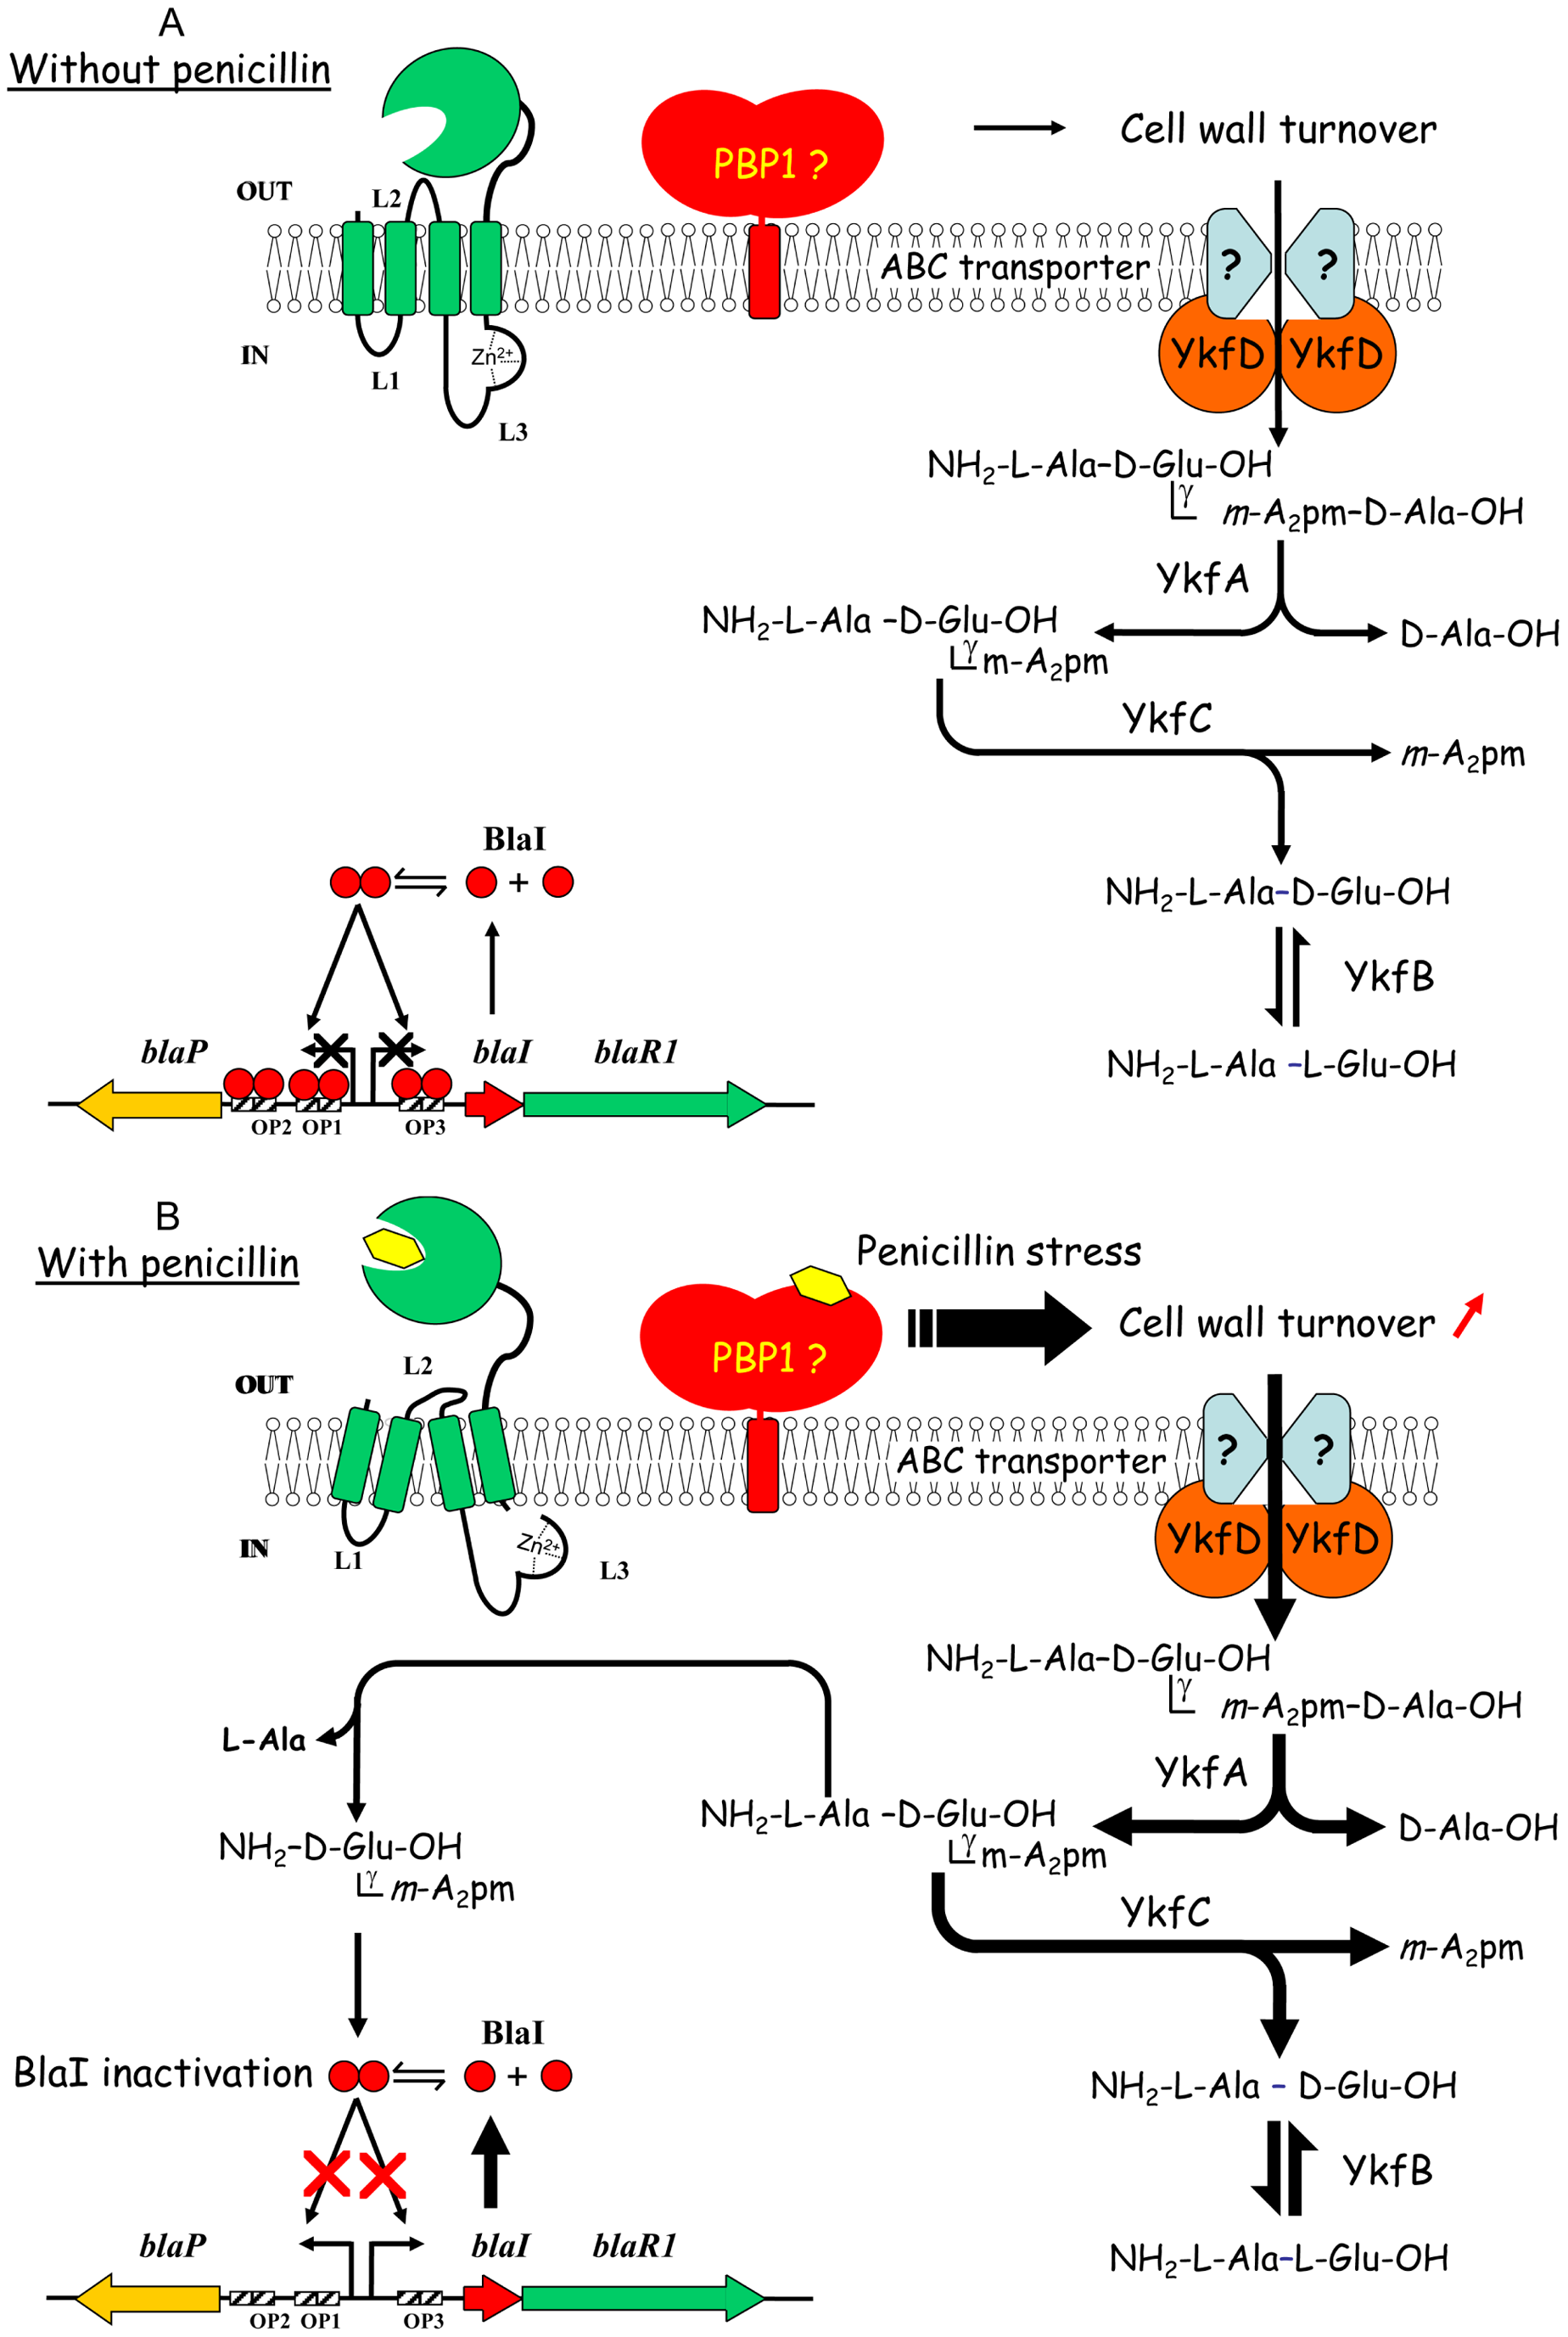 New model proposed for β-lactamase induction in <i>B. licheniformis</i> 749/I.